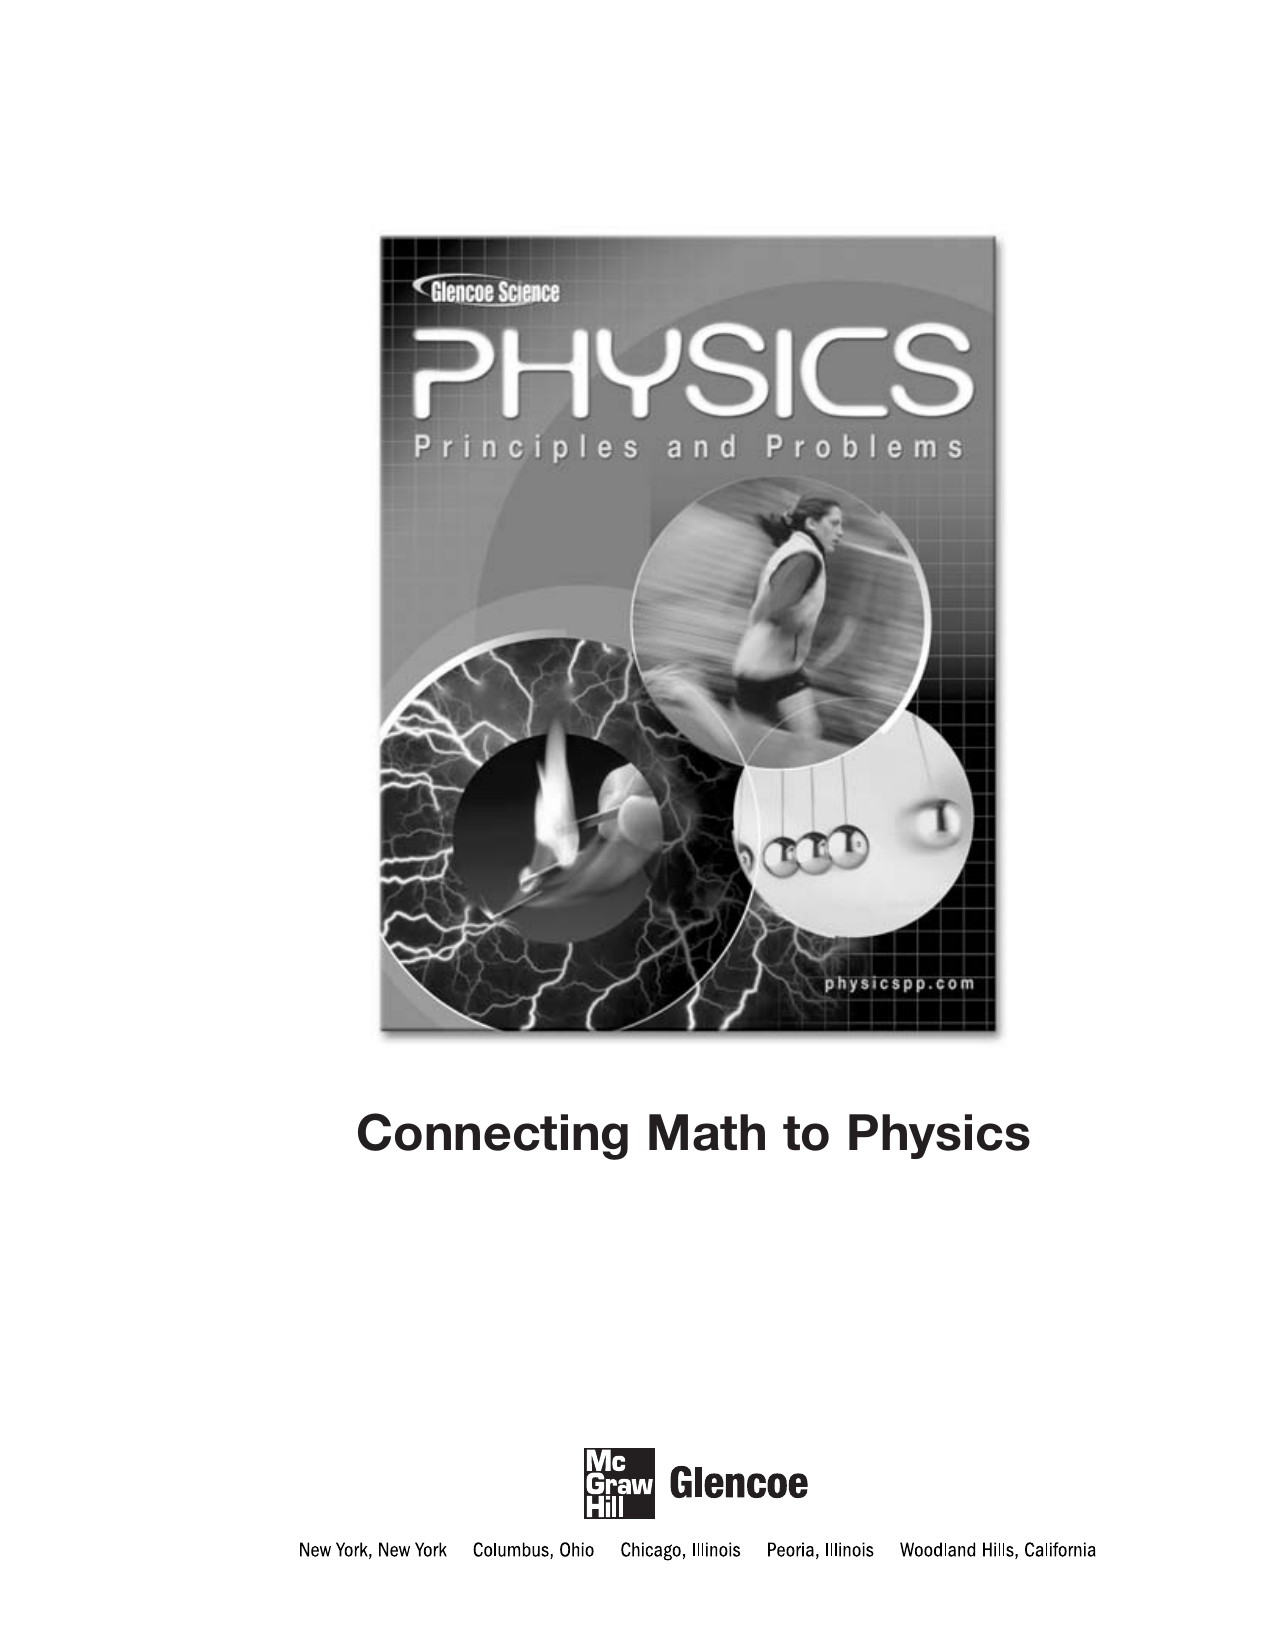 Bestseller Physics Principles And Problems Study Guide